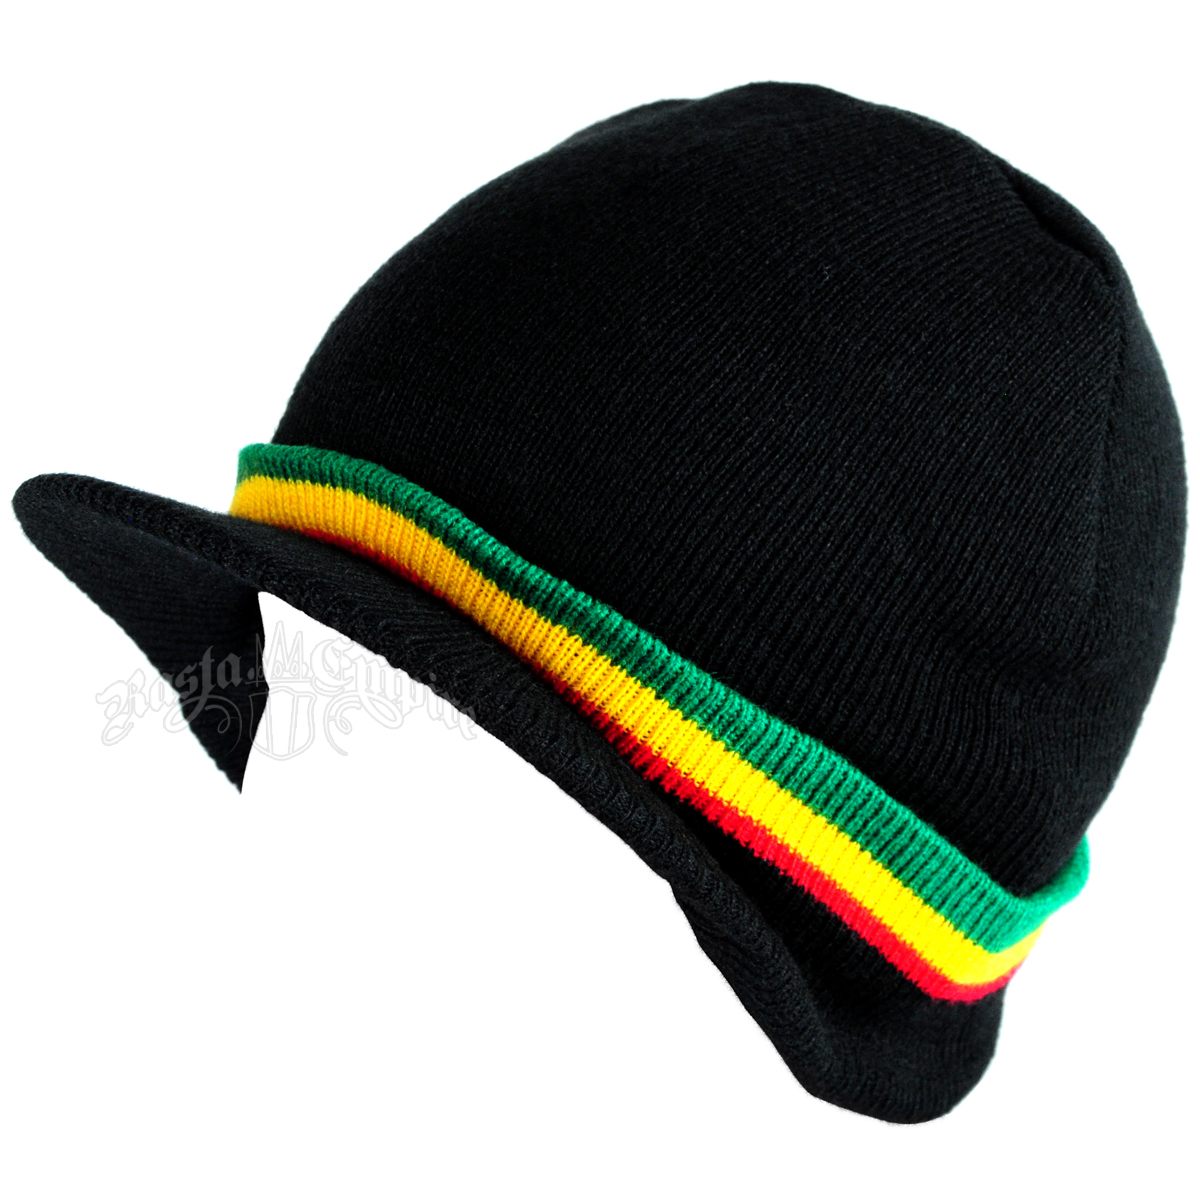 Rasta Striped Cuffed Visor Cap